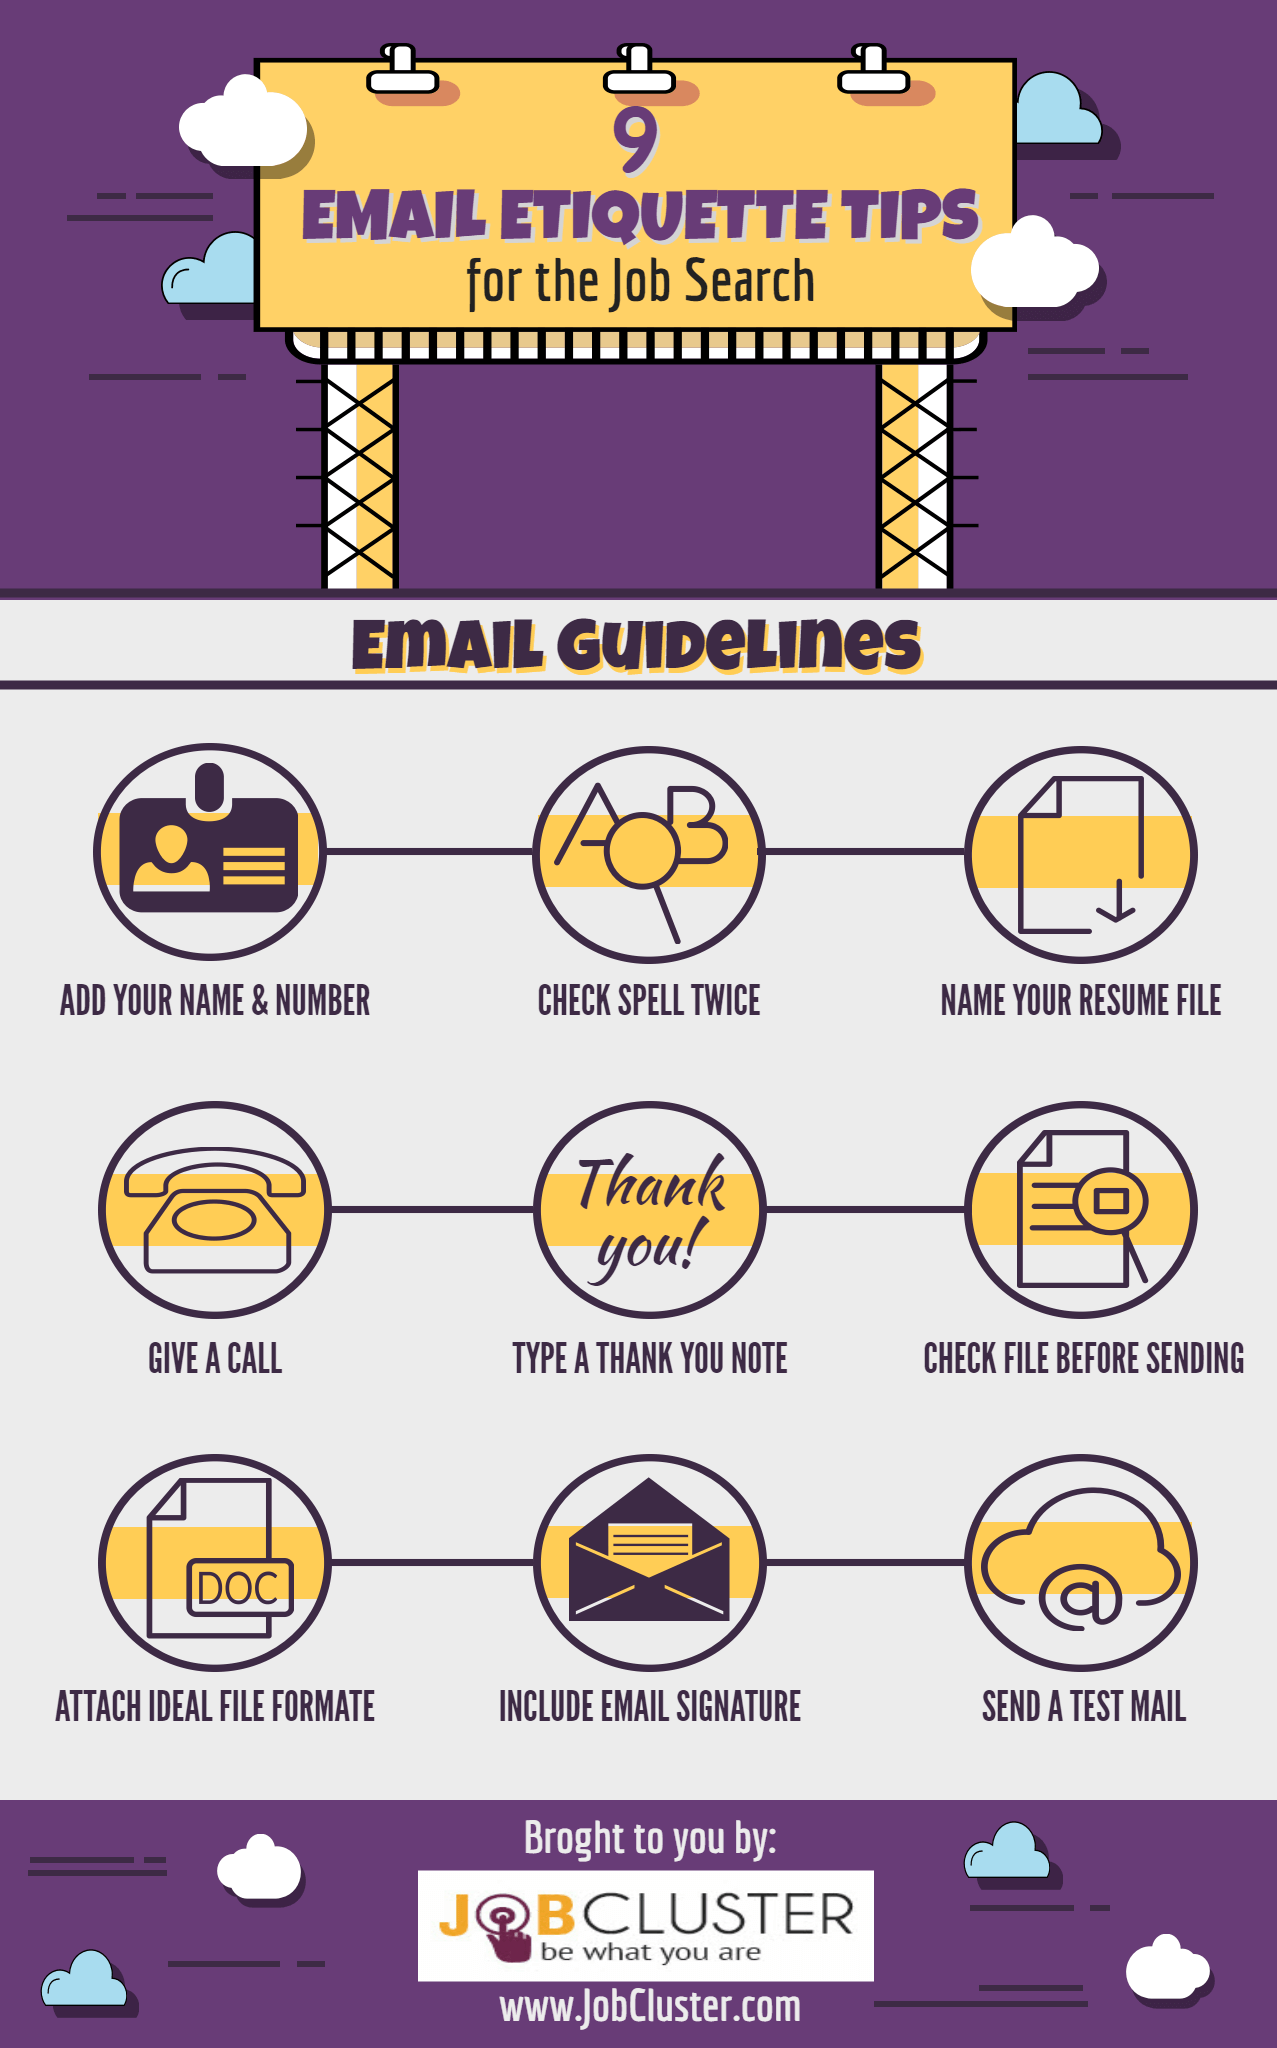 Email Etiquette Tips for Job Seekers Infographic (With